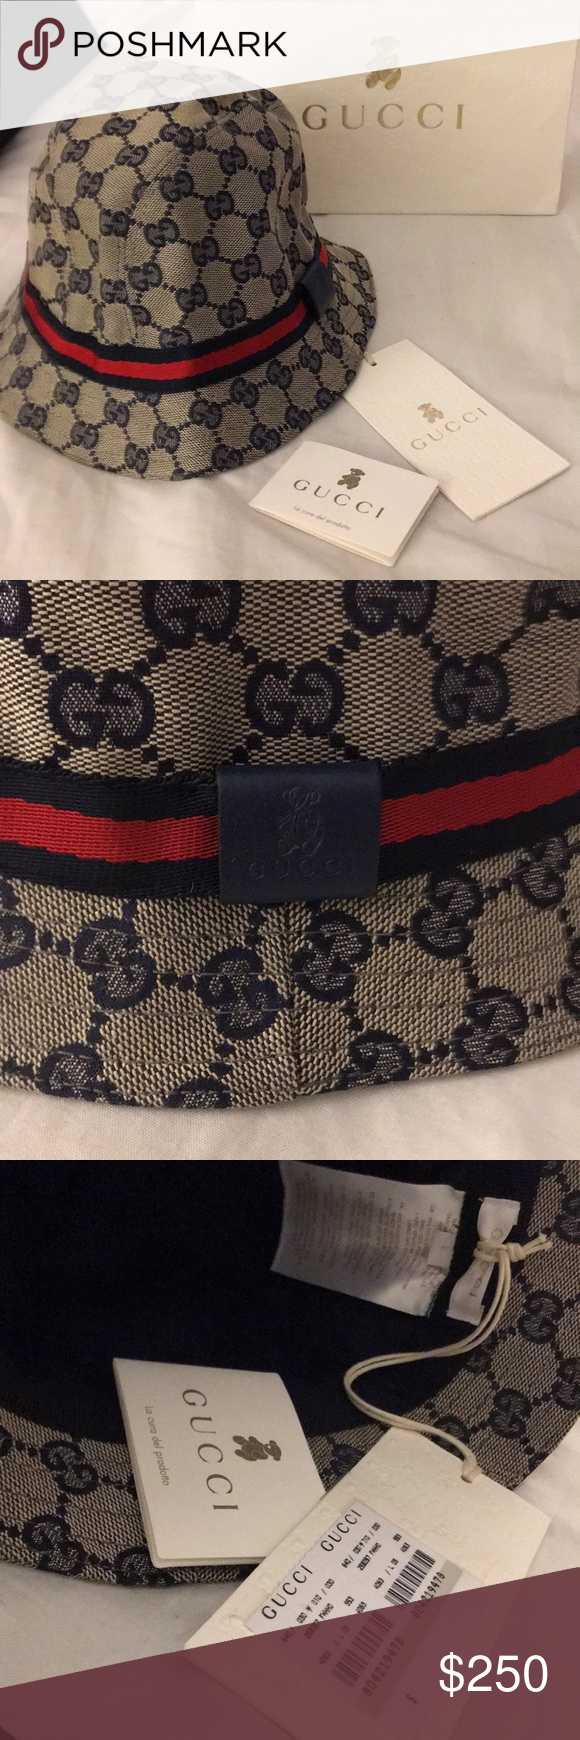 b34cb921224 Kids Gucci Fedora Hat in Navy GG Supreme 100% Authentic Kids Gucci Fedora  Cap Brand New with tags  never worn Navy Blue color Gucci Accessories Hats